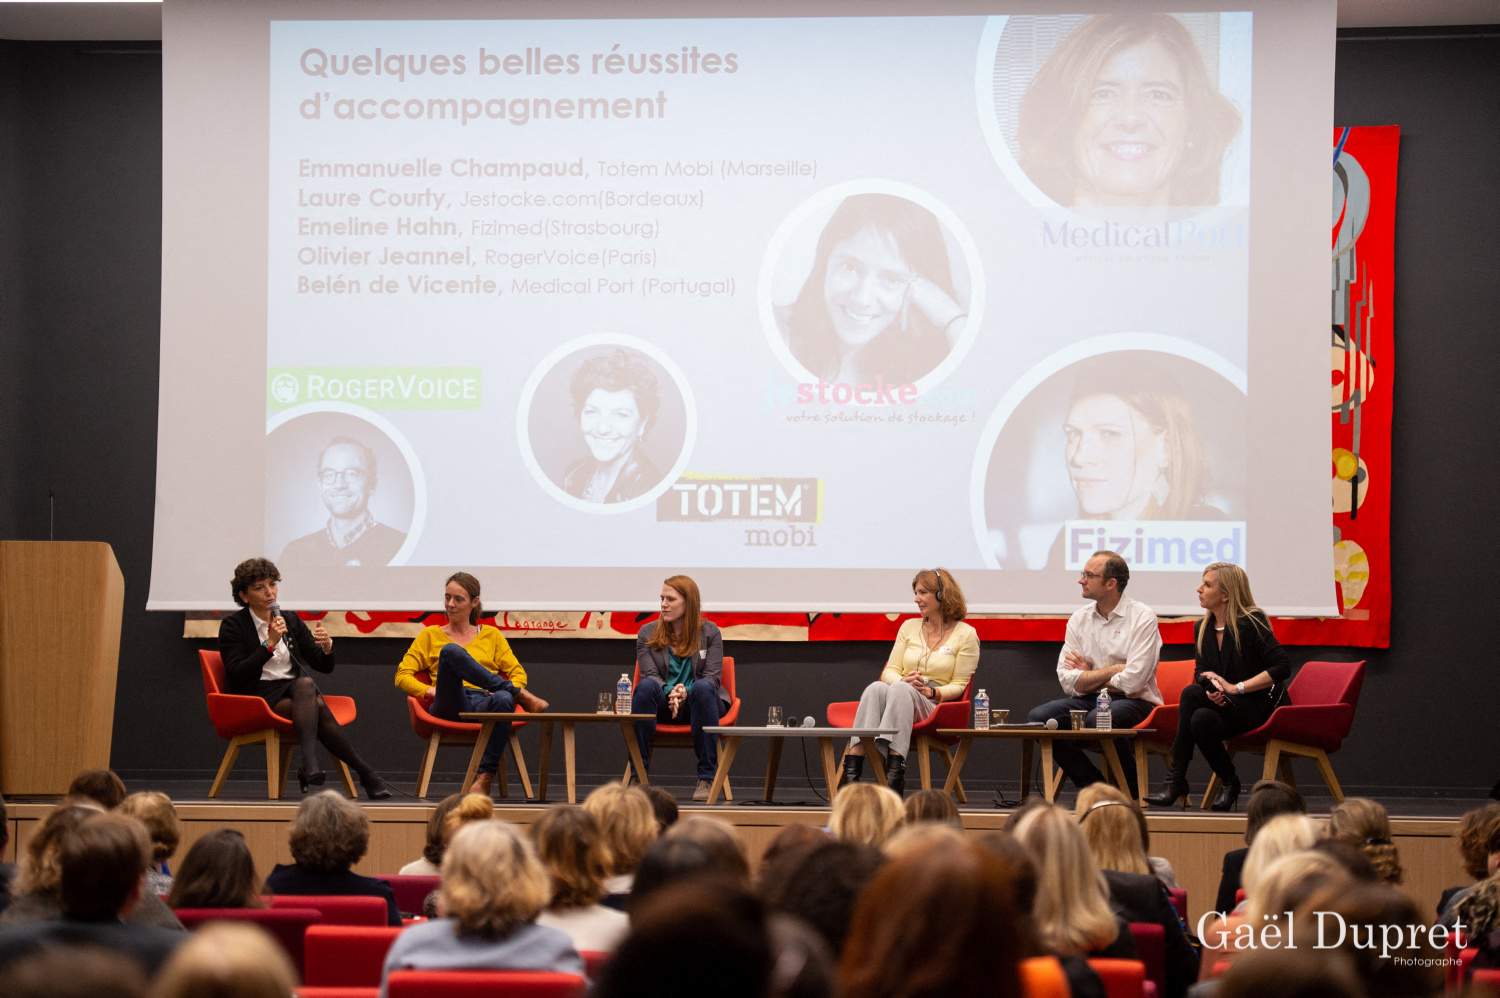 ©Gaël Dupret, France, Paris le 2018-11-15 : 2ème édition des WINDAY Paris par FBA - Femmes Business Angels. Photo : Exemples de réussites de start-up accompagnées par des Femmes Business Angels à travers les régions.  Emmanuelle CHAMPAUD, CEO de Totem Mobi (Marseille - France) Laure COURTY, CEO de Jestocke.com (Bordeaux - France) Emeline HAHN, CEO de Fizimed (Strasbourg - France) Olivier JEANNEL, CEO de RogerVoice (Paris - France) Bélen de VICENTE, High Level Advisory Board, WA4E.   women Angel's support to start-ups accross European régions - Sucess stories Emmanuelle CHAMPAUD, CEO of Totem Mobi (Marseille - France) Laure COURTY, CEO of Jestocke.com (Bordeaux - France) Emeline HAHN, CEO of Fizimed (Strasbourg - France) Olivier JEANNEL, CEO of RogerVoice (Paris - France) Bélen de VICENTE, High Level Advisory Board, WA4E